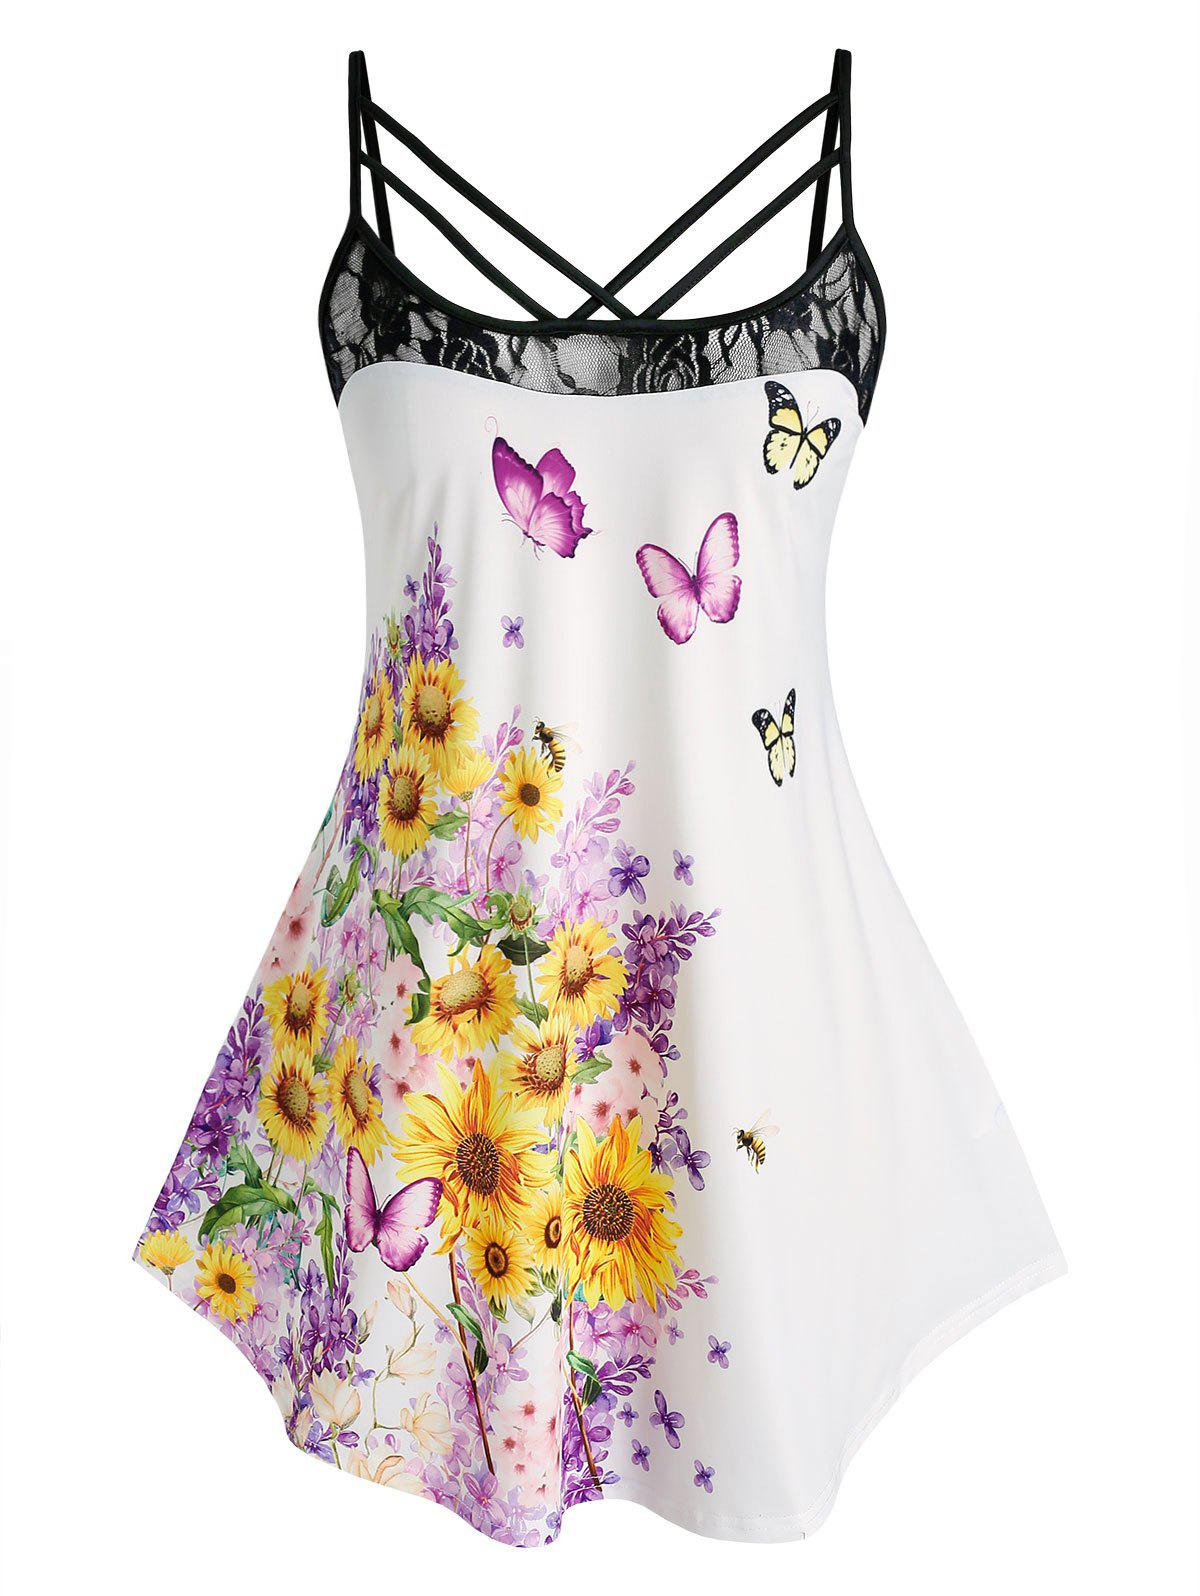 Plus Size Sunflower Butterfly Print Lace Panel Straps Cami Top - multicolor 5X